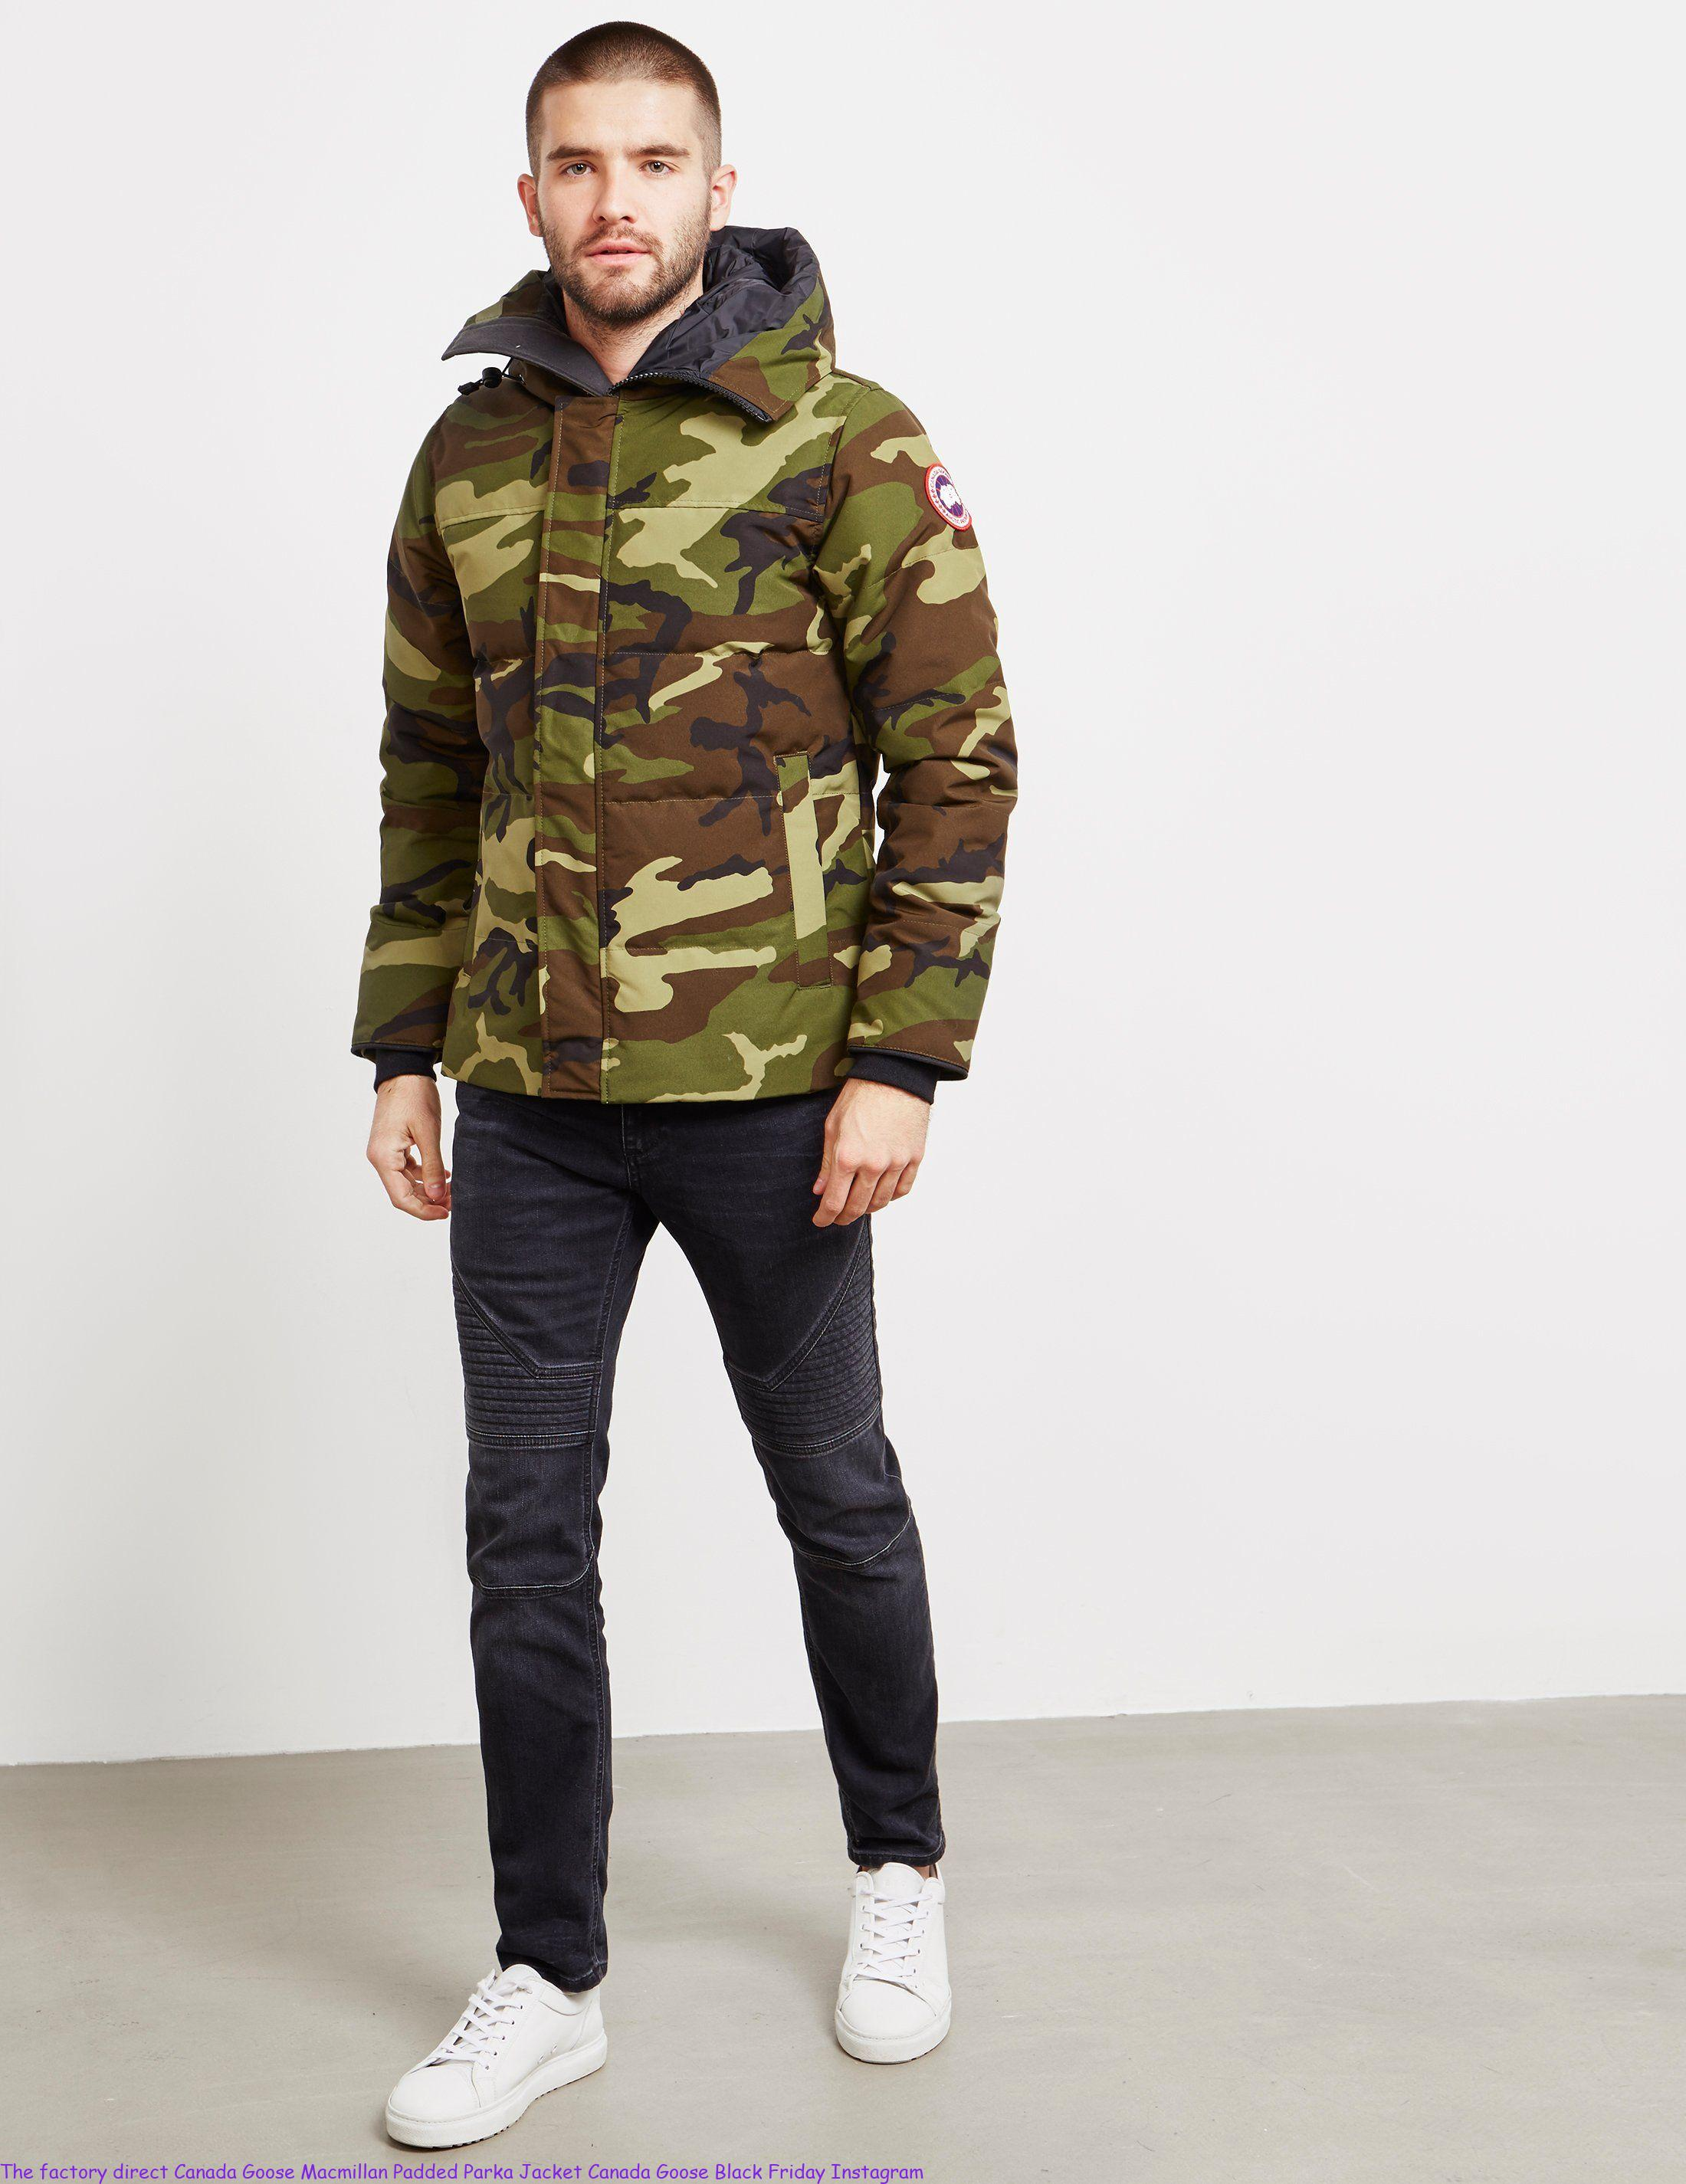 54859683301 The factory direct Canada Goose Macmillan Padded Parka Jacket Canada Goose  Black Friday Instagram – Cheap Canada Goose Outlet Sale | Goose You